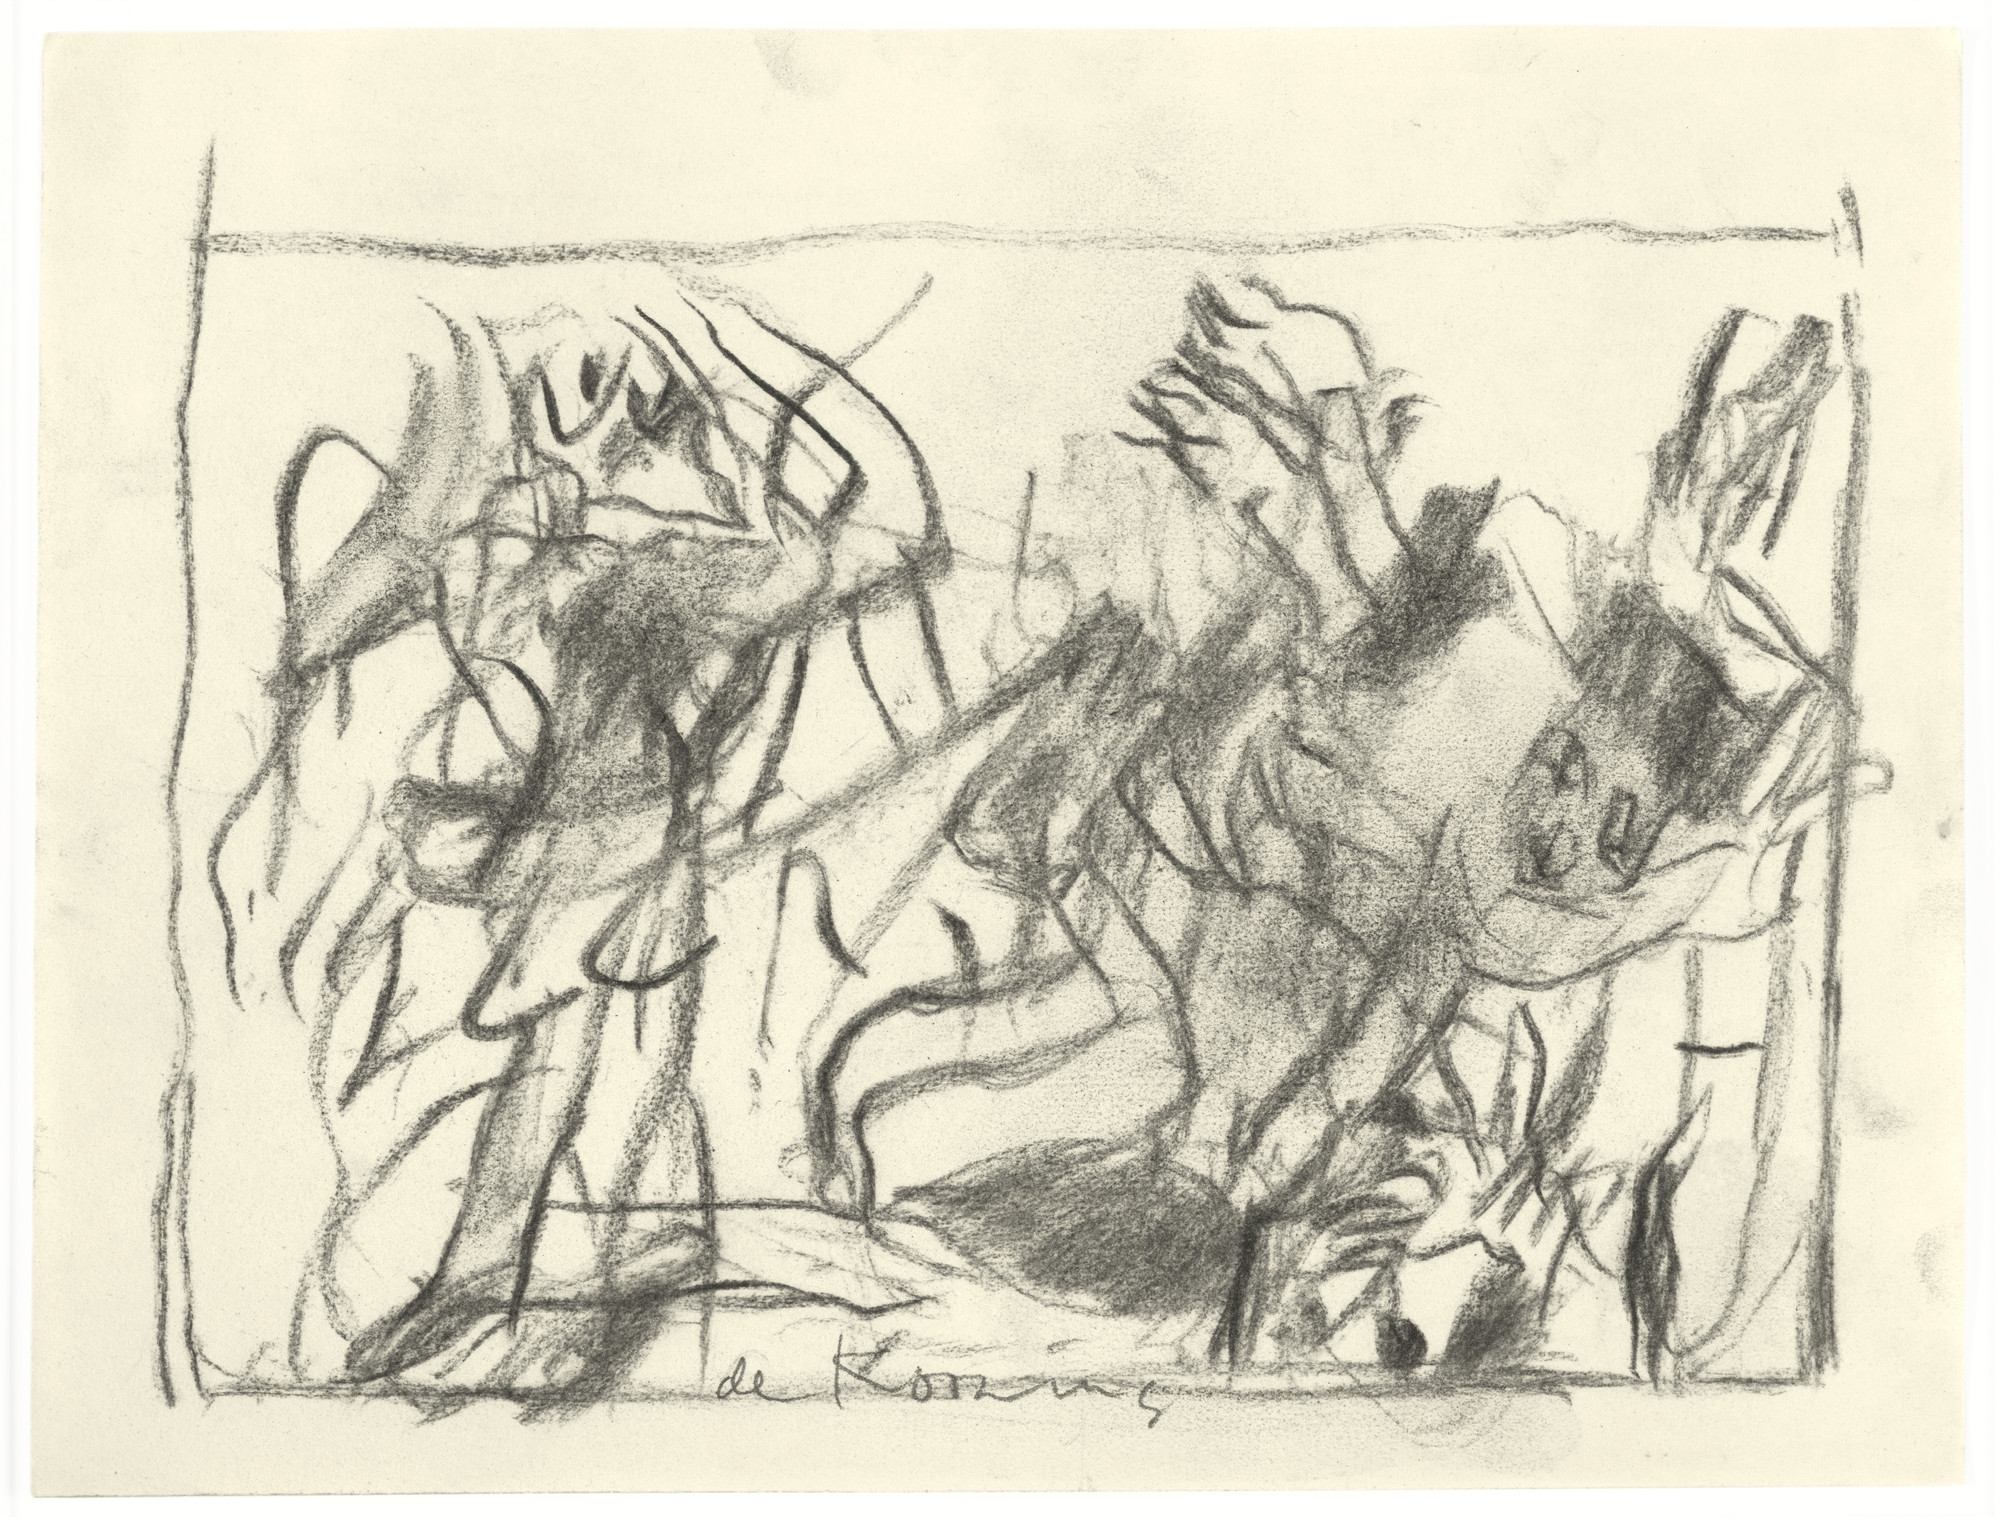 Willem de Kooning. Untitled. (c. 1975-1980)